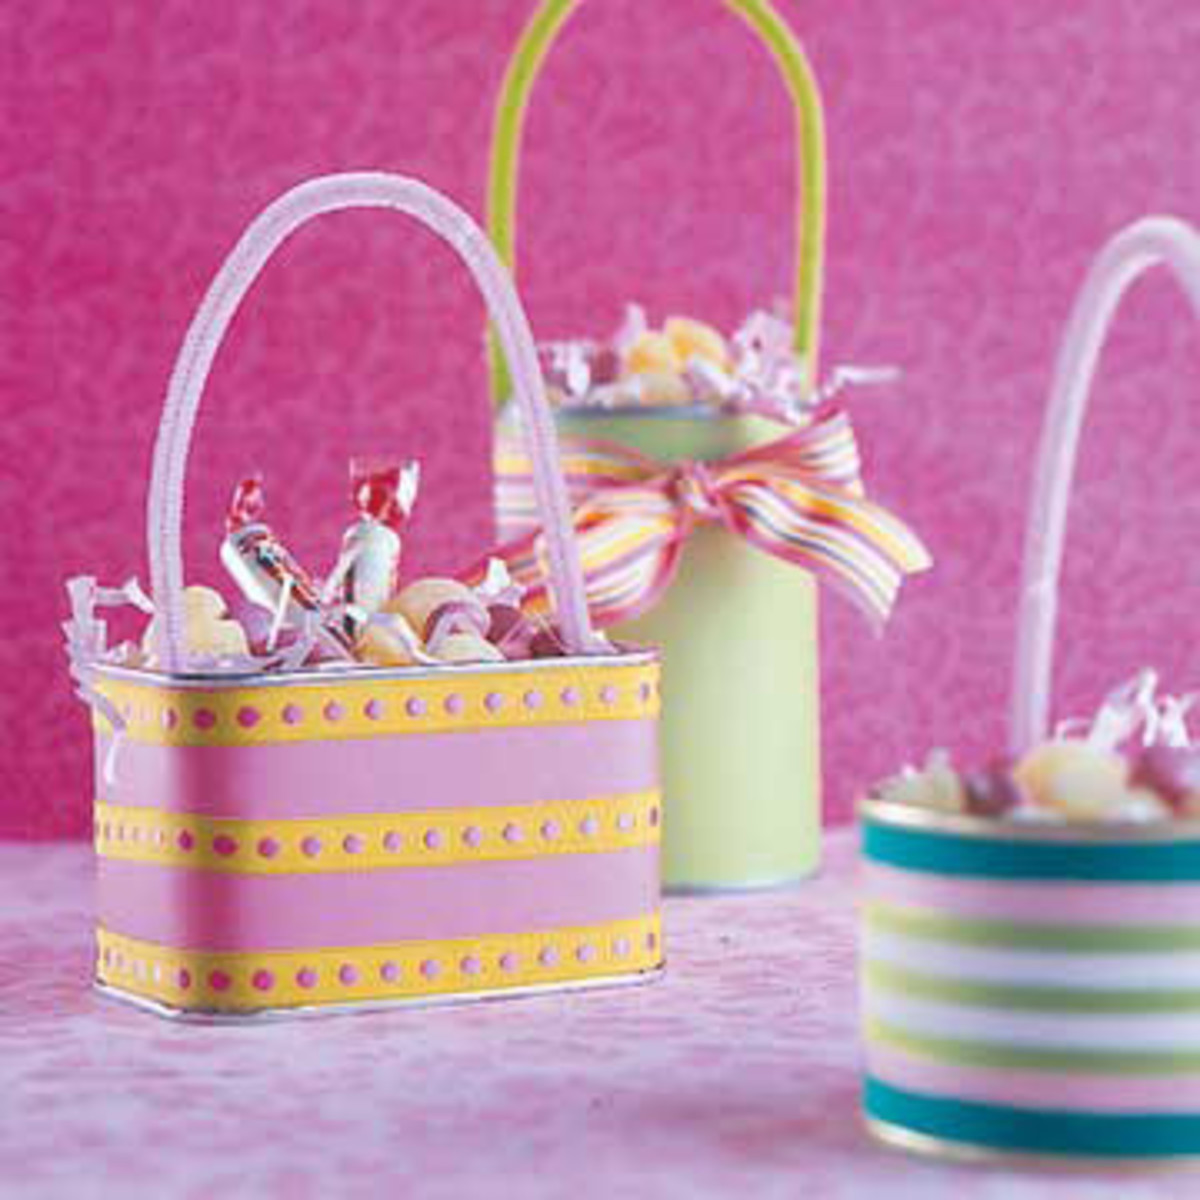 Kid Easter Baskets: Unique, Homemade, and Creative Ideas